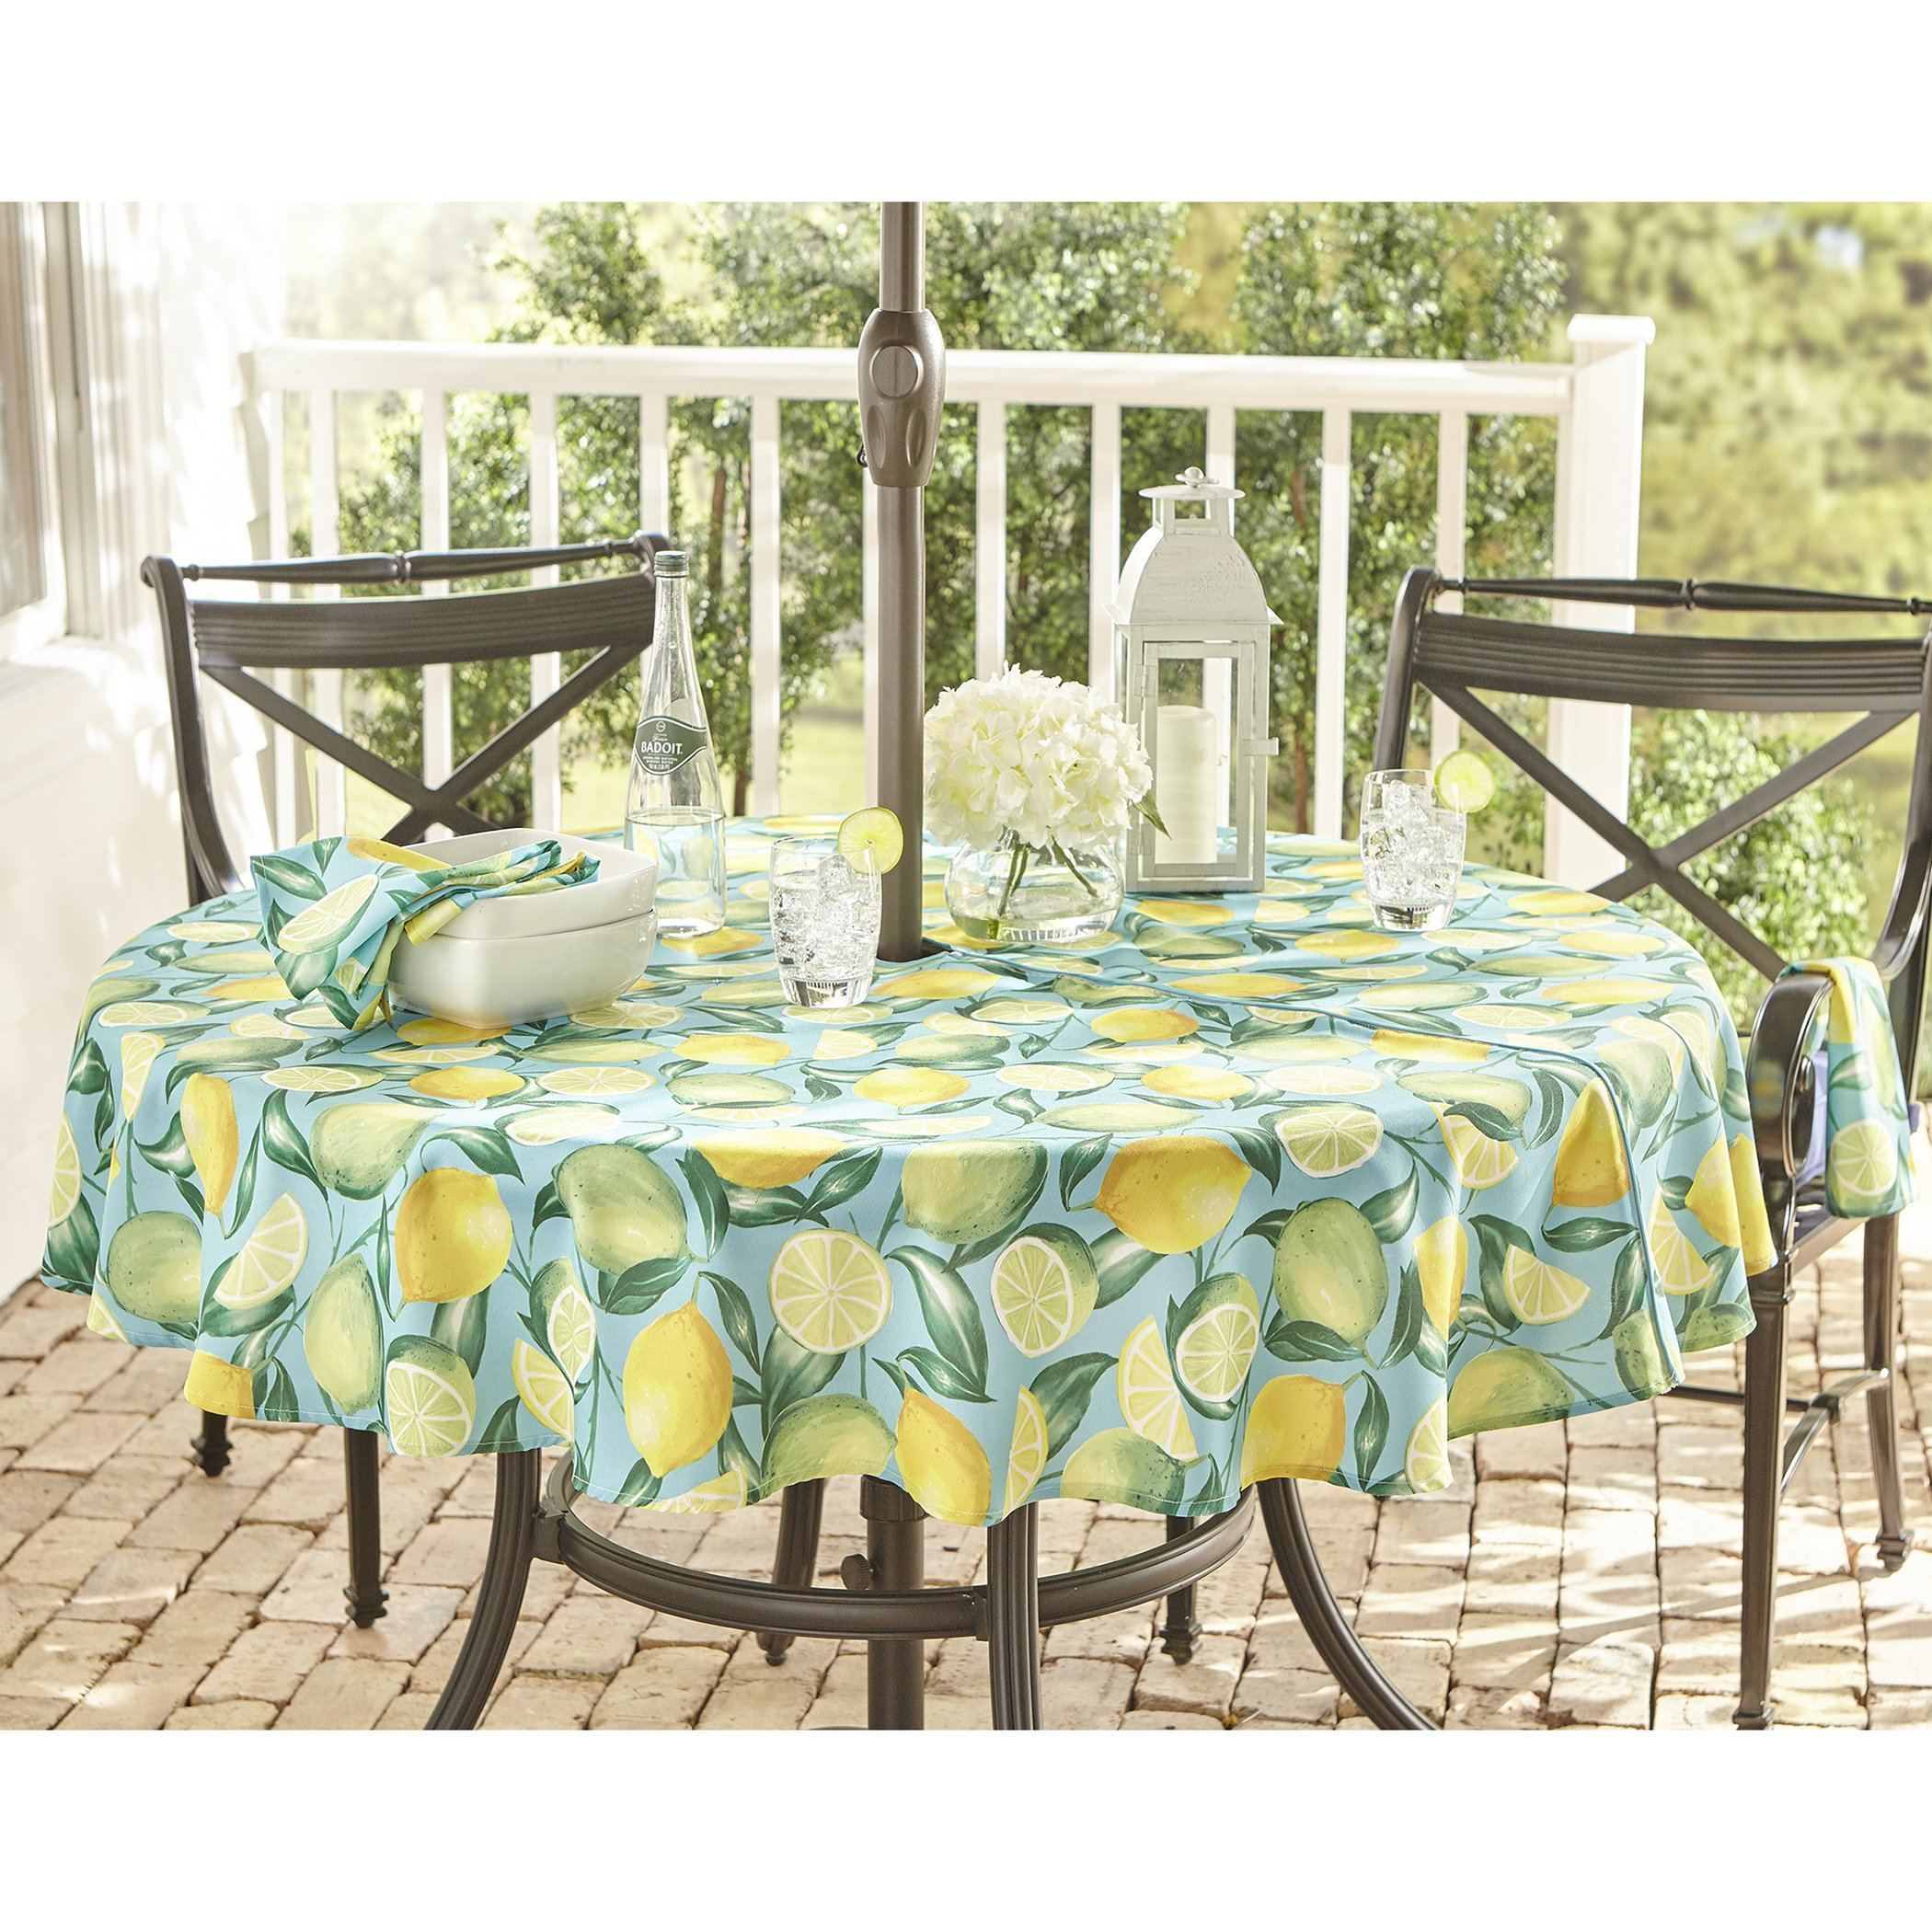 Pin On Spring Tablecloths And Napkins